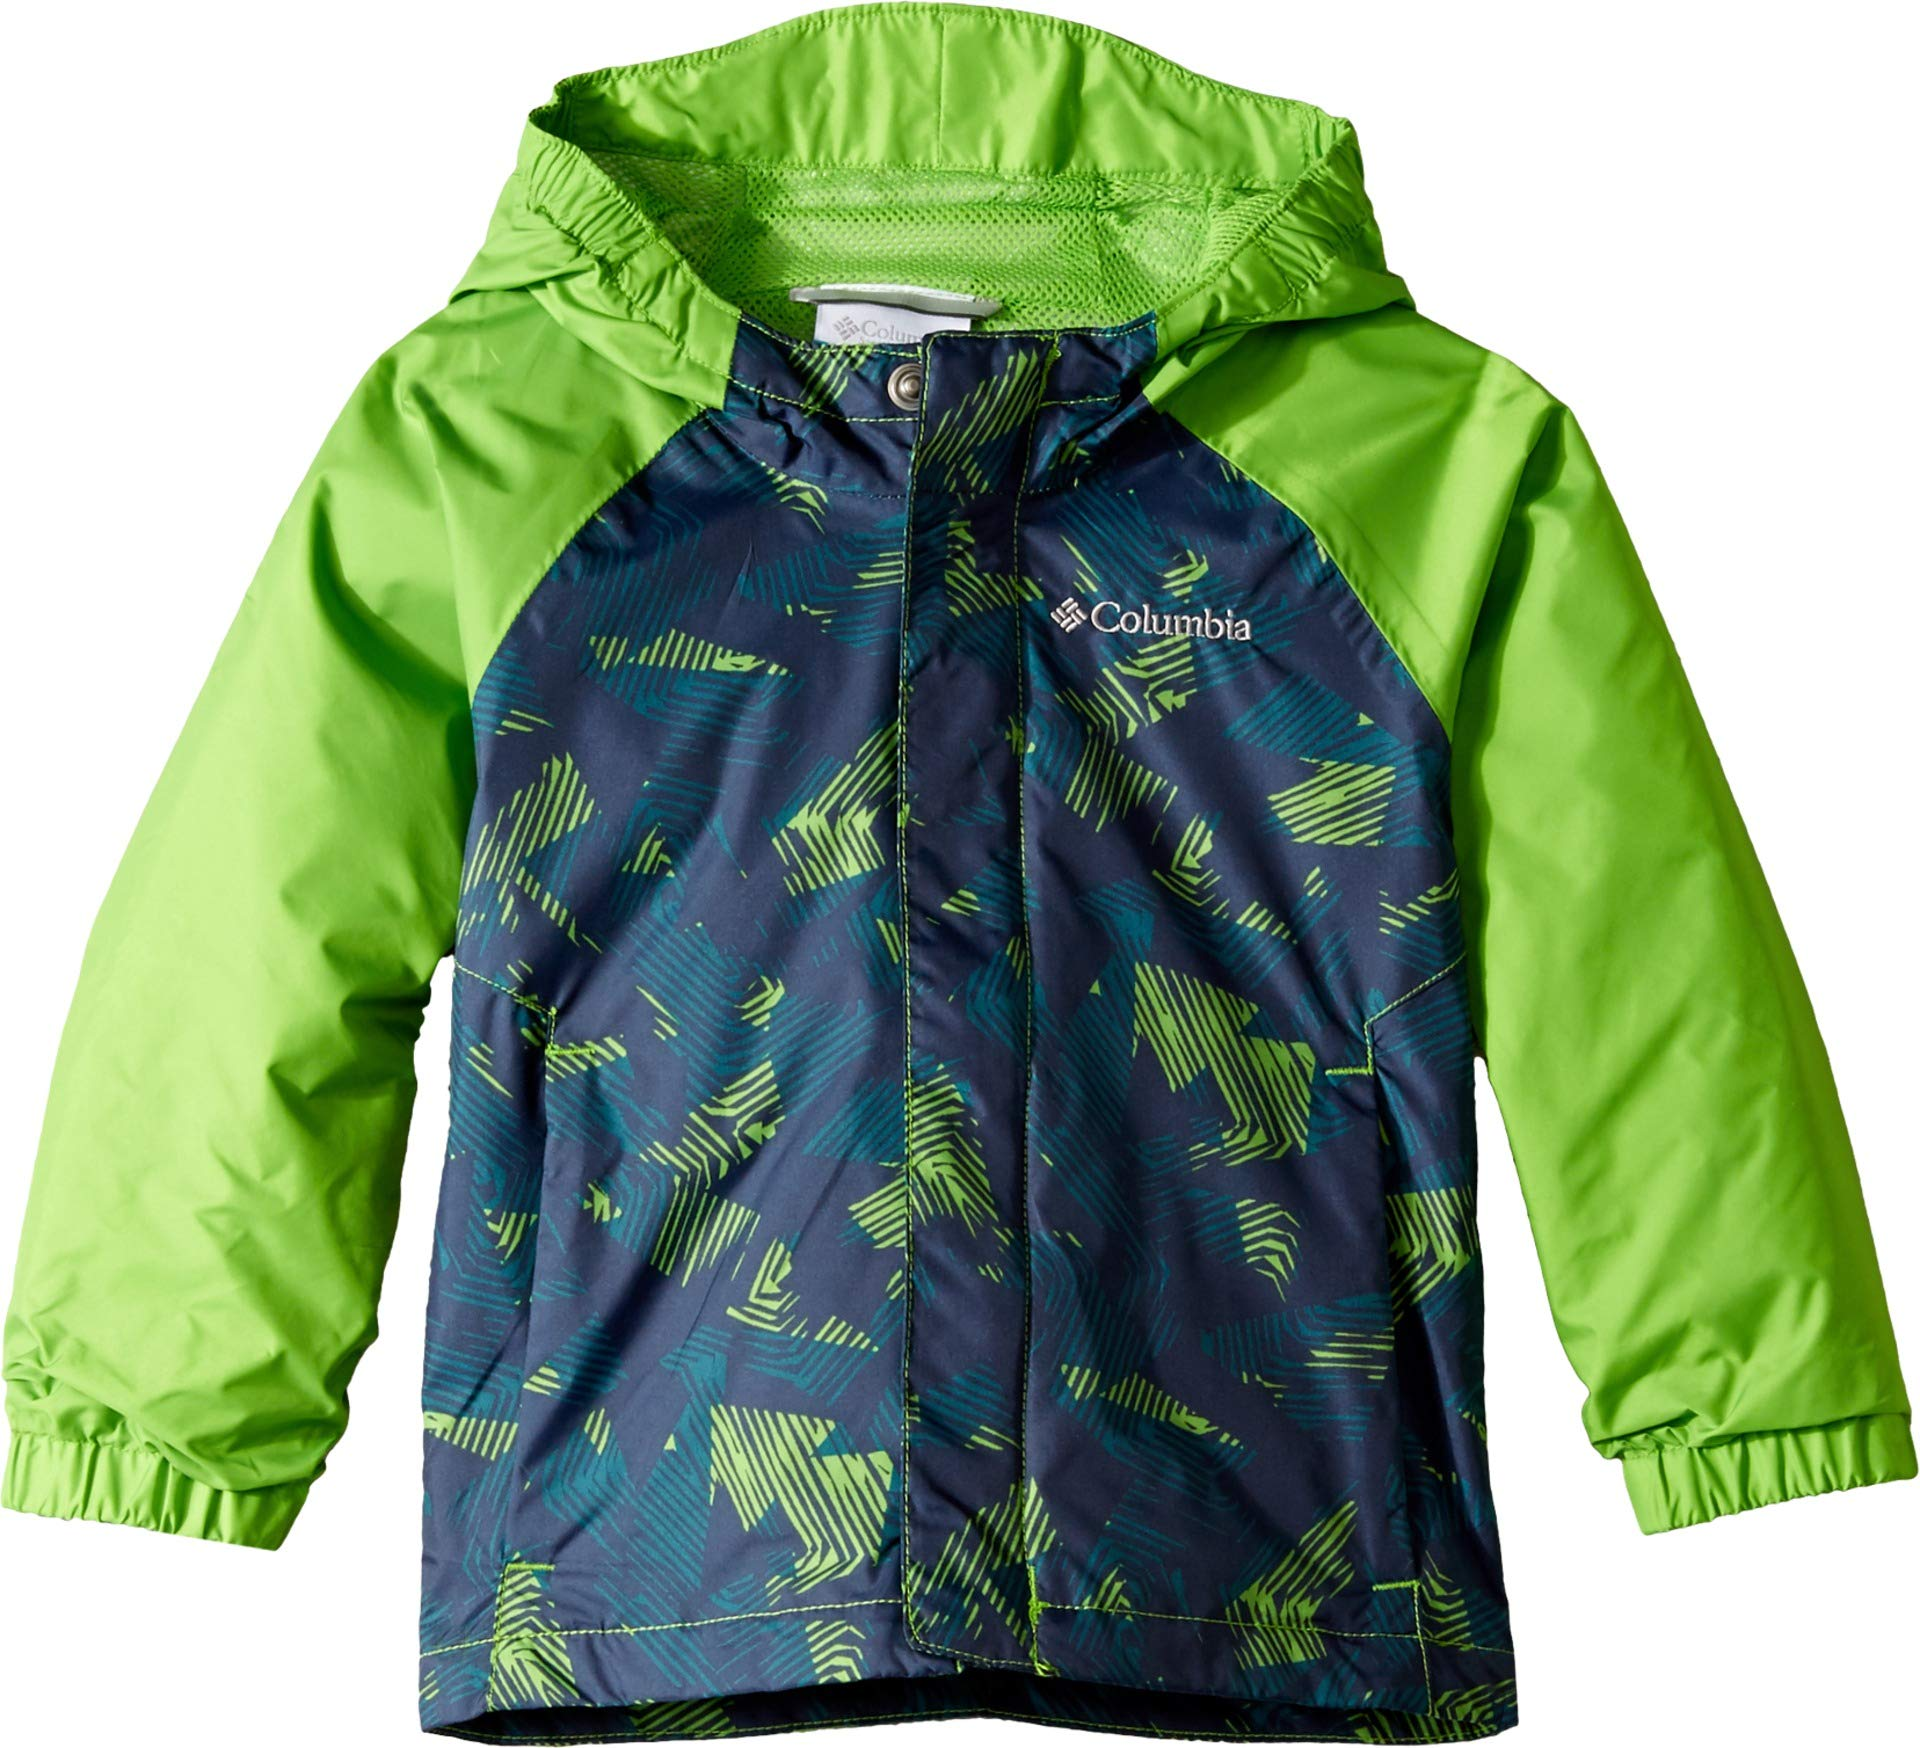 Columbia Kids Baby Boy's Fast and Curious¿ II Rain Jacket (Toddler) Cyber Green Invizza/Collegiate Navy Texture 3T